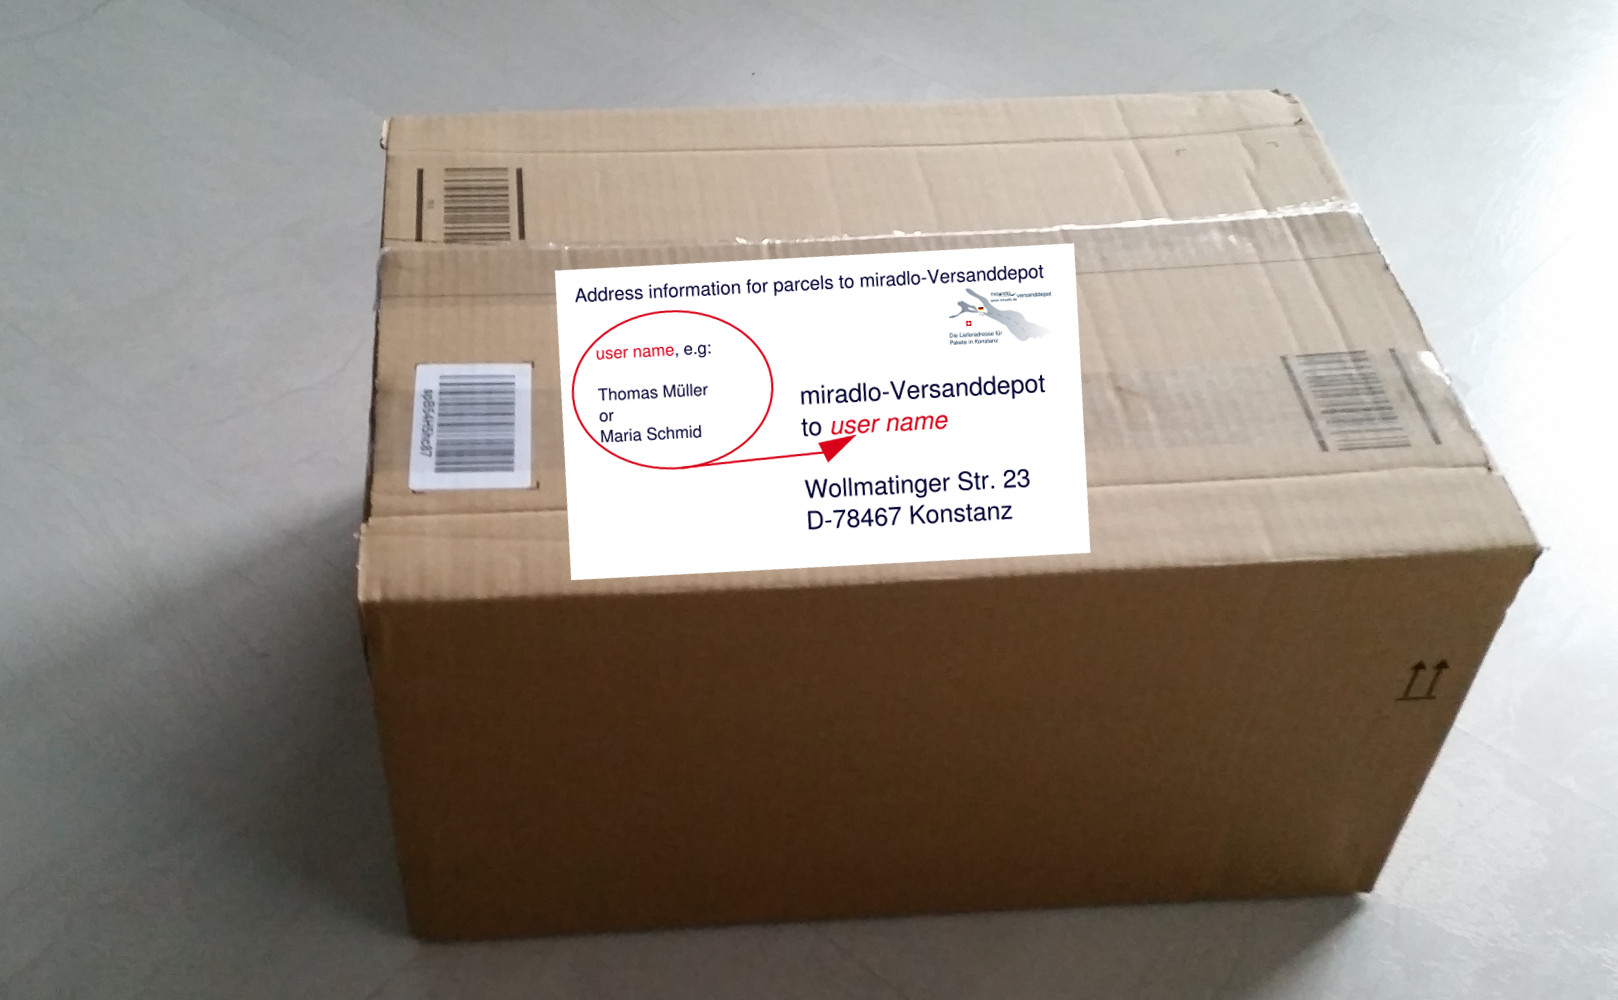 parcel address info for shipping to German delivery address miradlo-Versanddepot, Konstanz